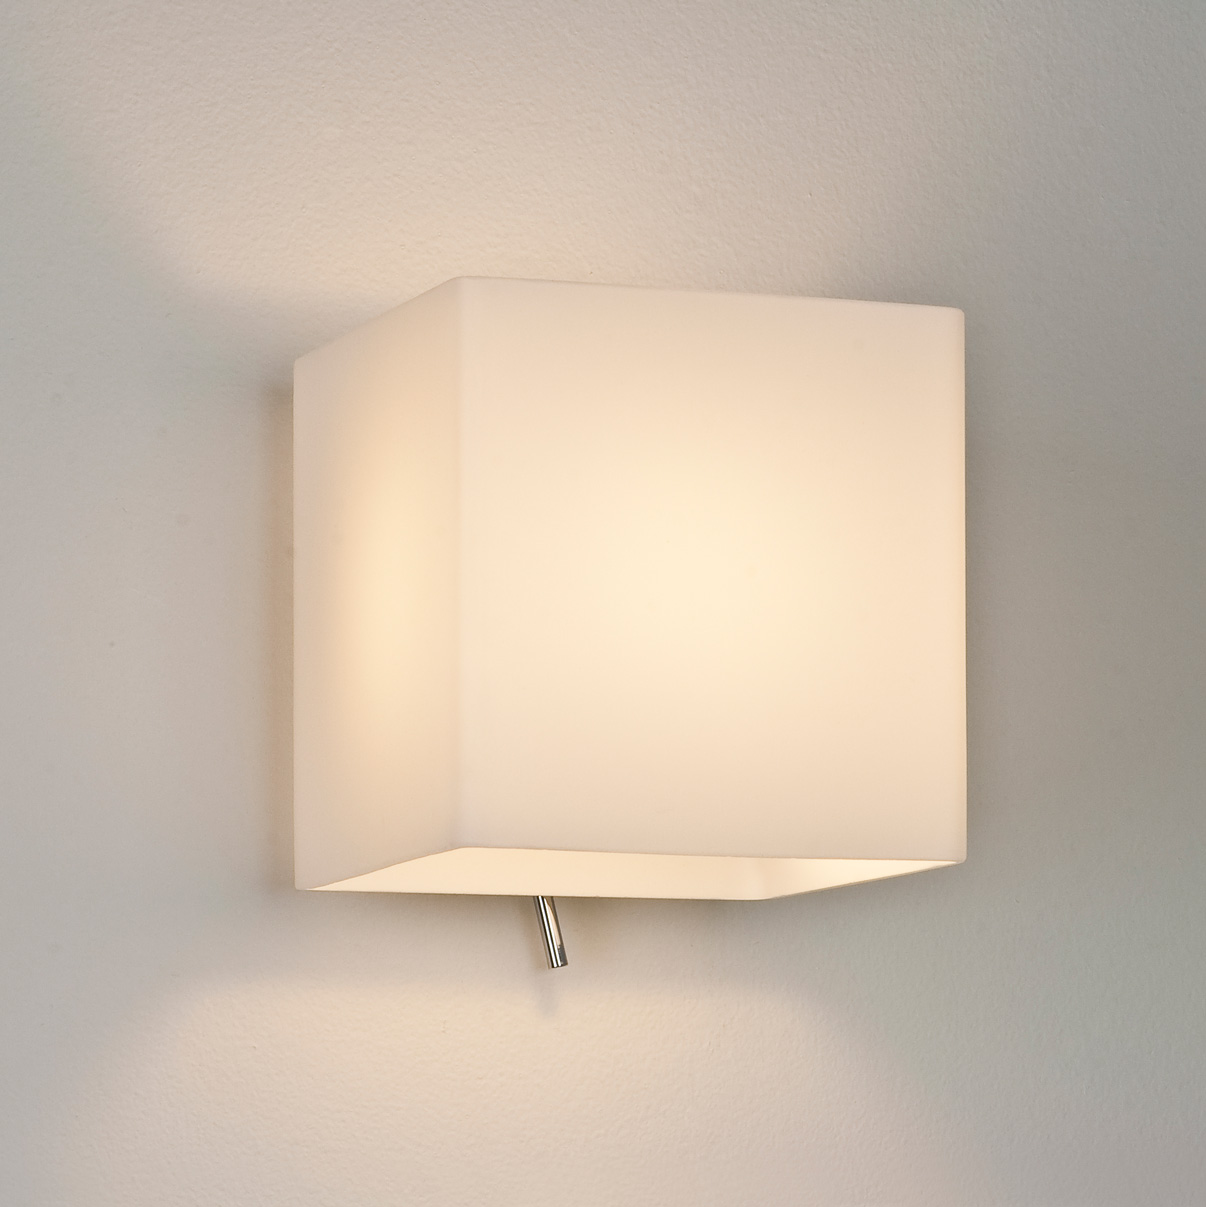 Wall Lamps With Switch : Astro Luga square 0930 dimmable toggle switch wall light 60W E14 lamp chrome Liminaires